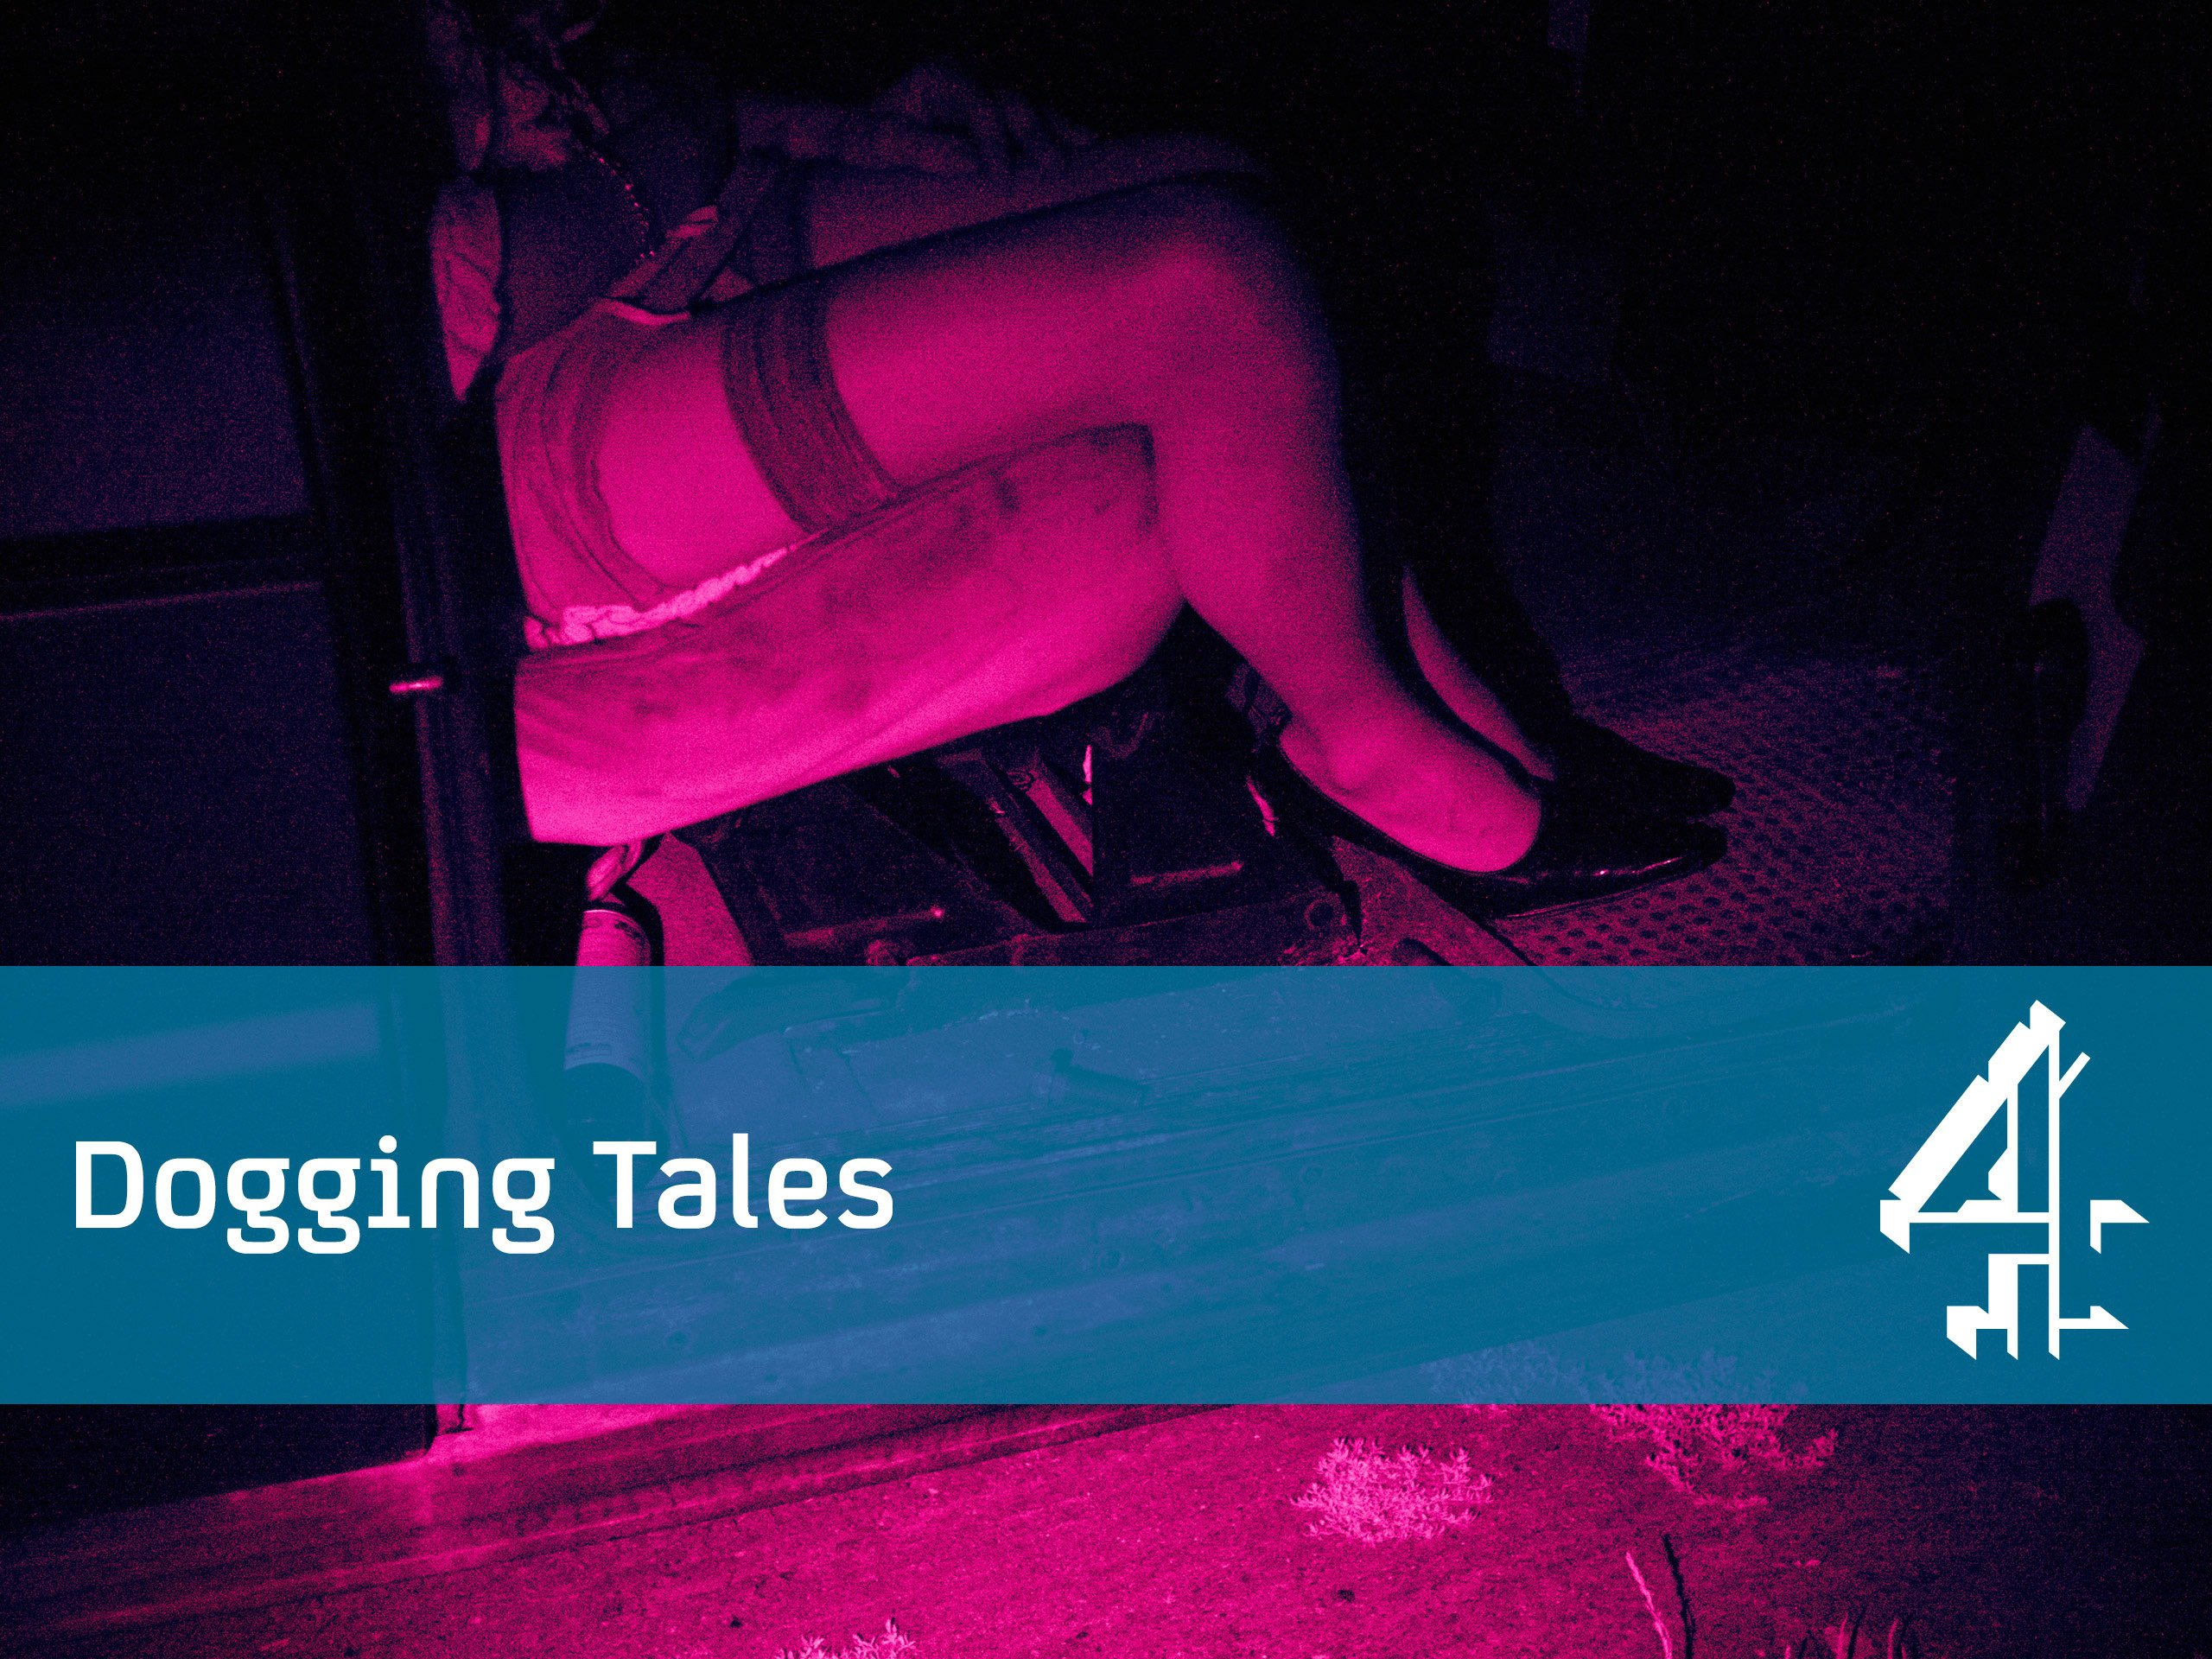 dogging tales channel 4 documentary watch online free